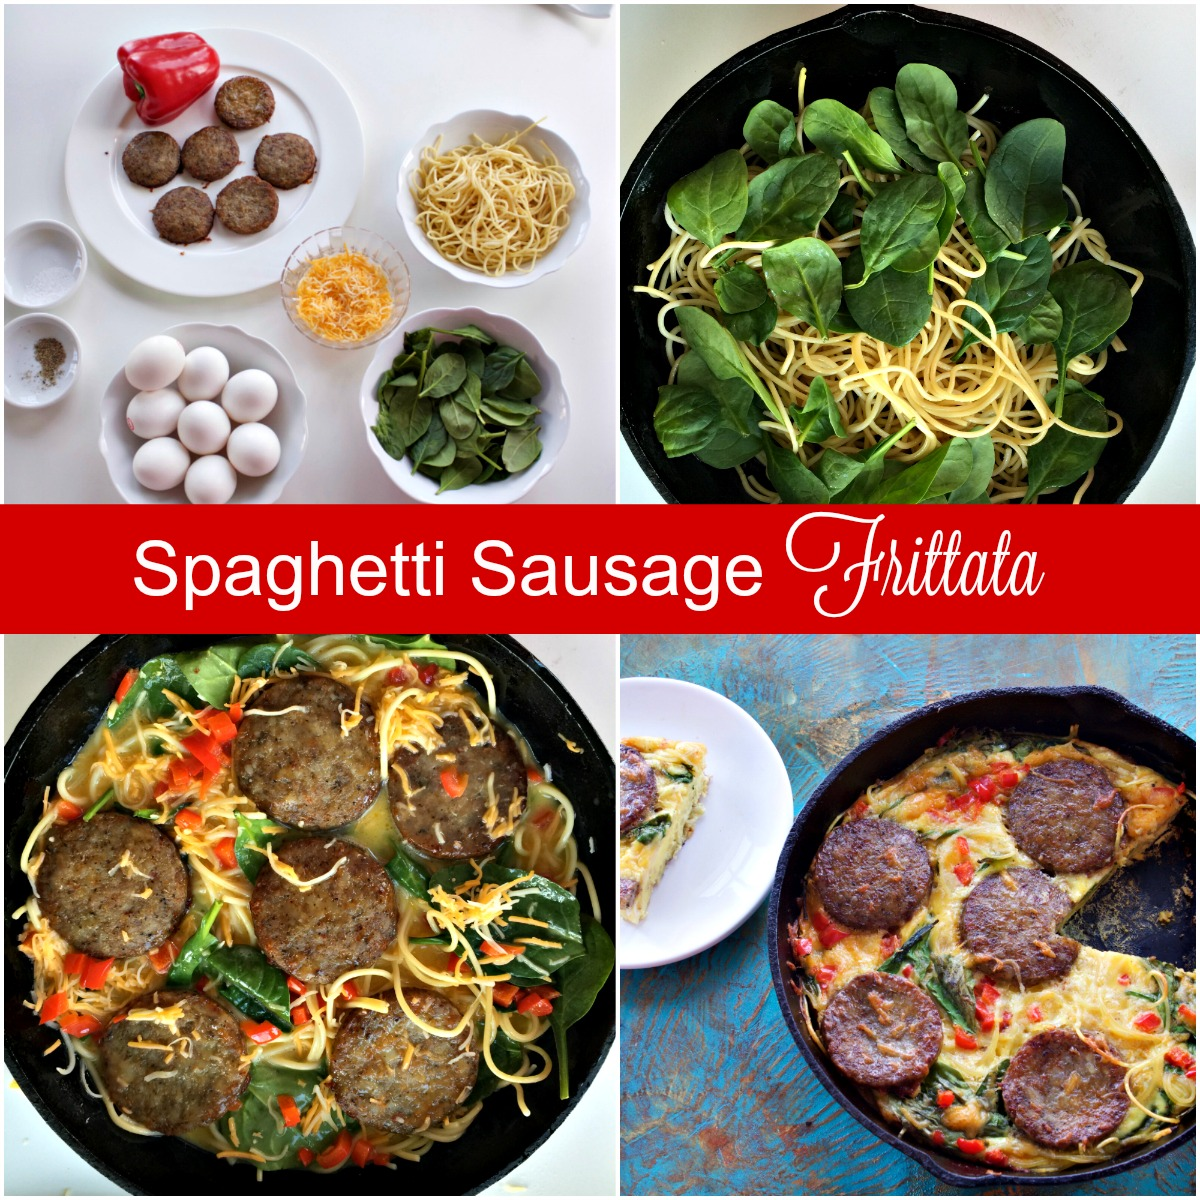 How to Make Sausage Spaghetti Frittata from Spinach Tiger